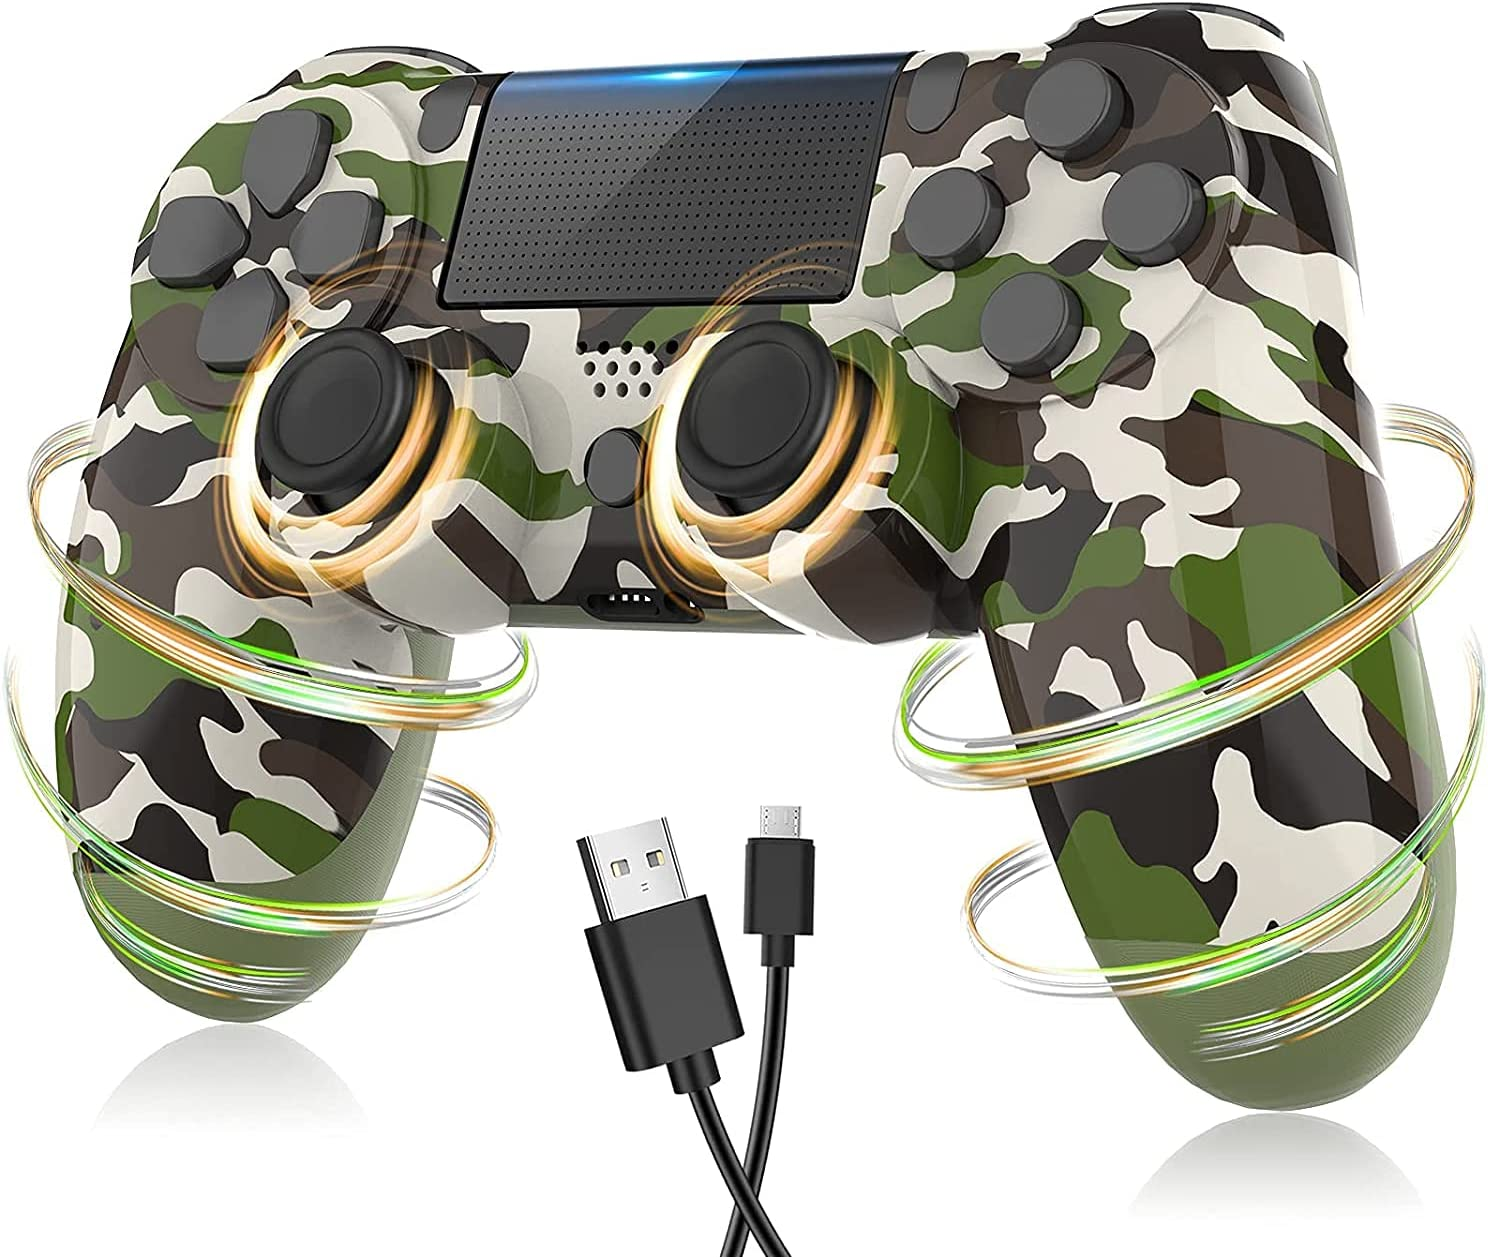 AUGEX Camo Green Regular discount PS4 Controller 4 Playstation Popular standard C with Compatible